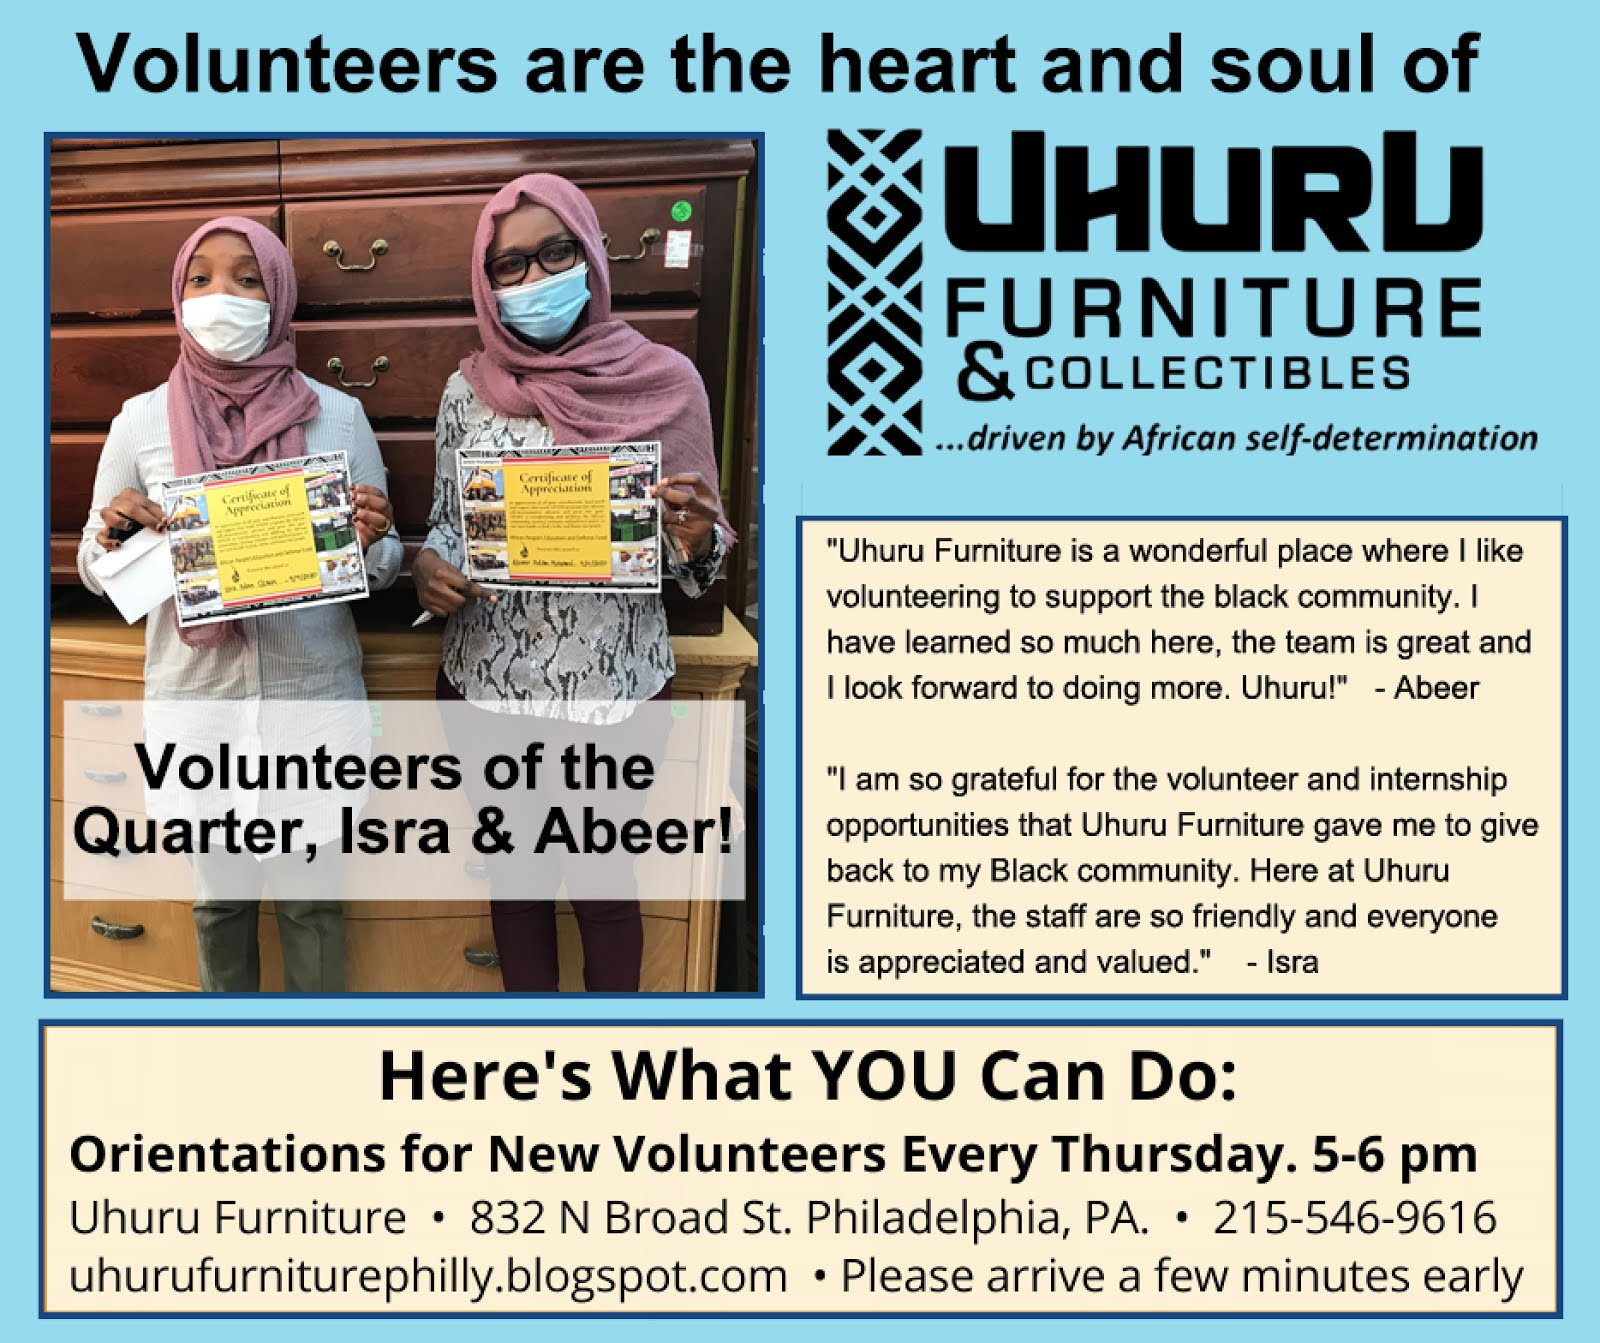 Volunteers Wanted! Orientations for new Volunteers  Every Thursday at 5pm at Uhuru Furniture